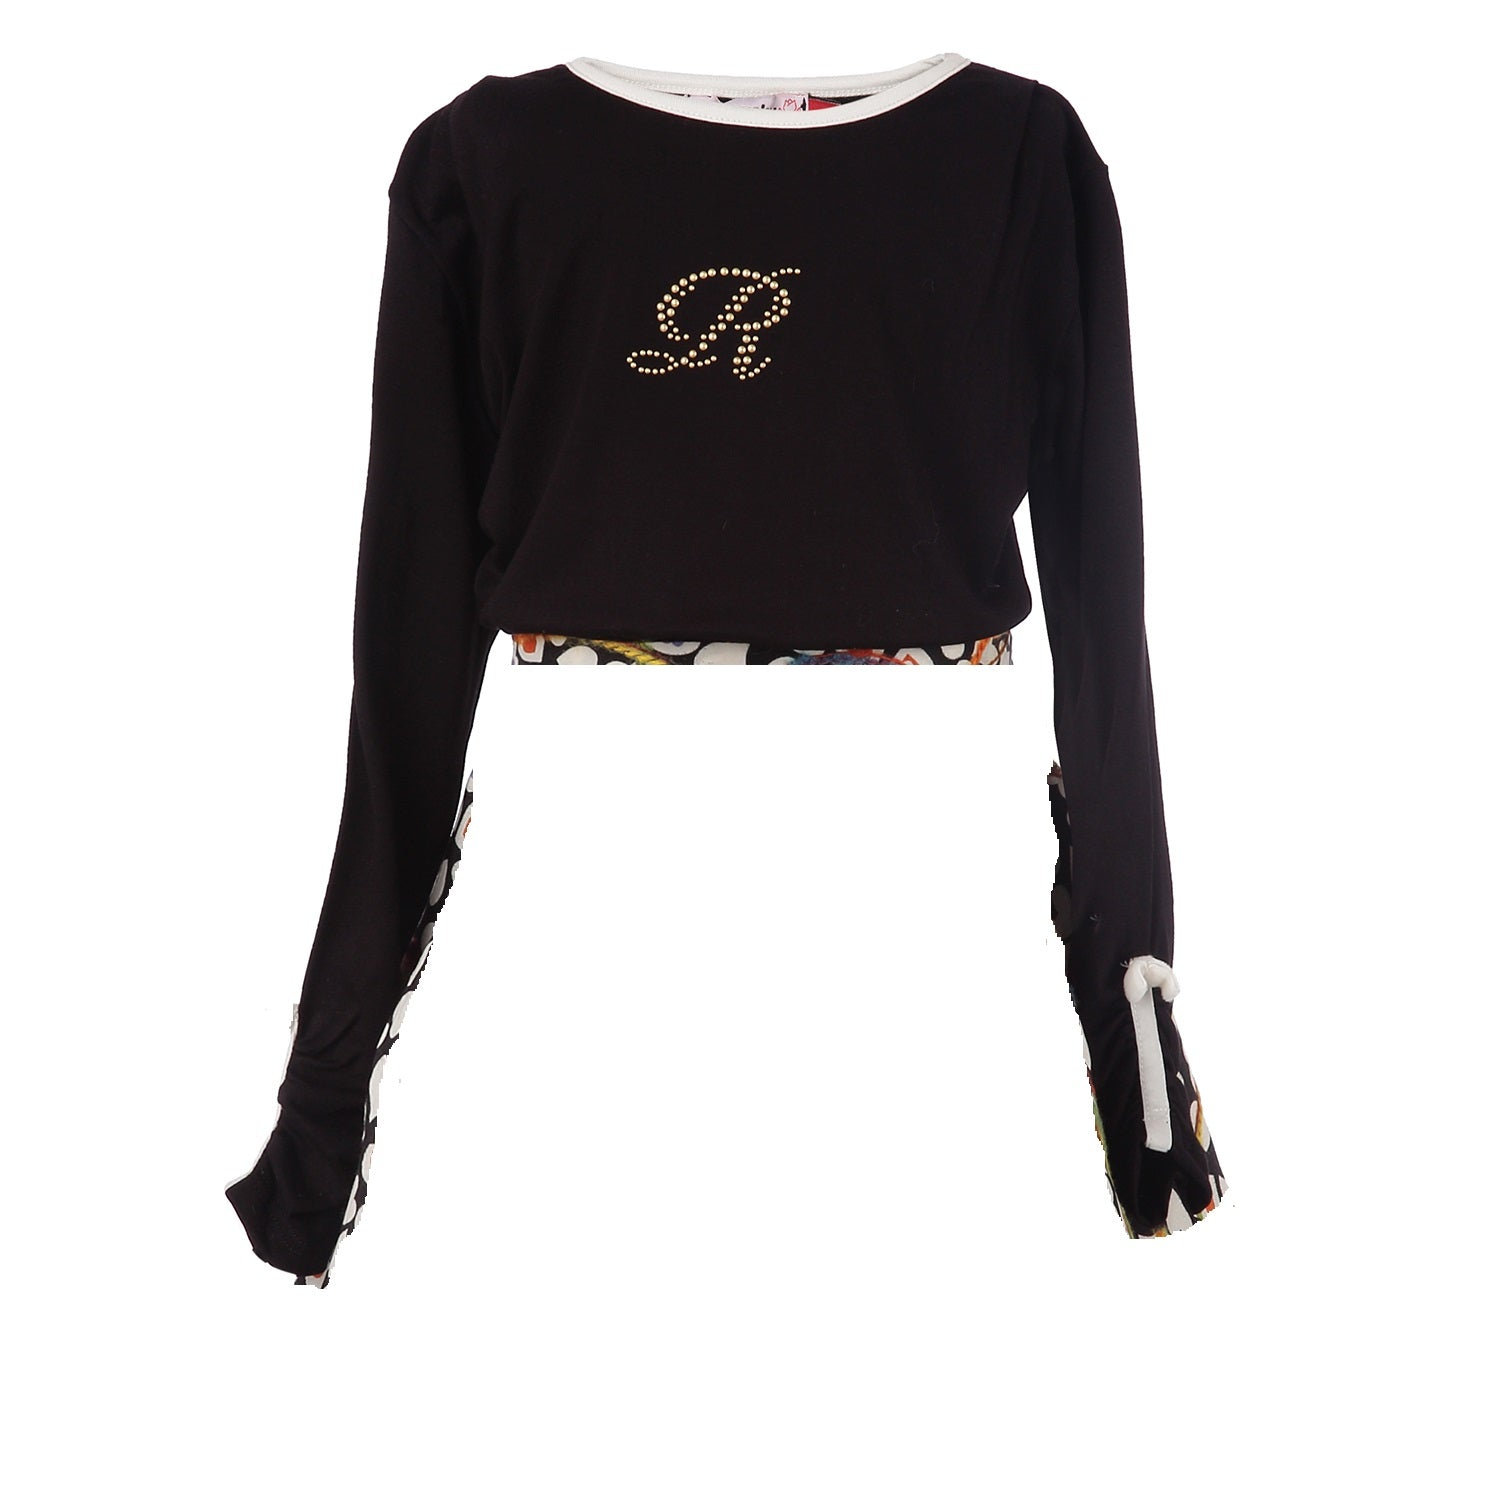 Girl Long Sleeve blouse in black